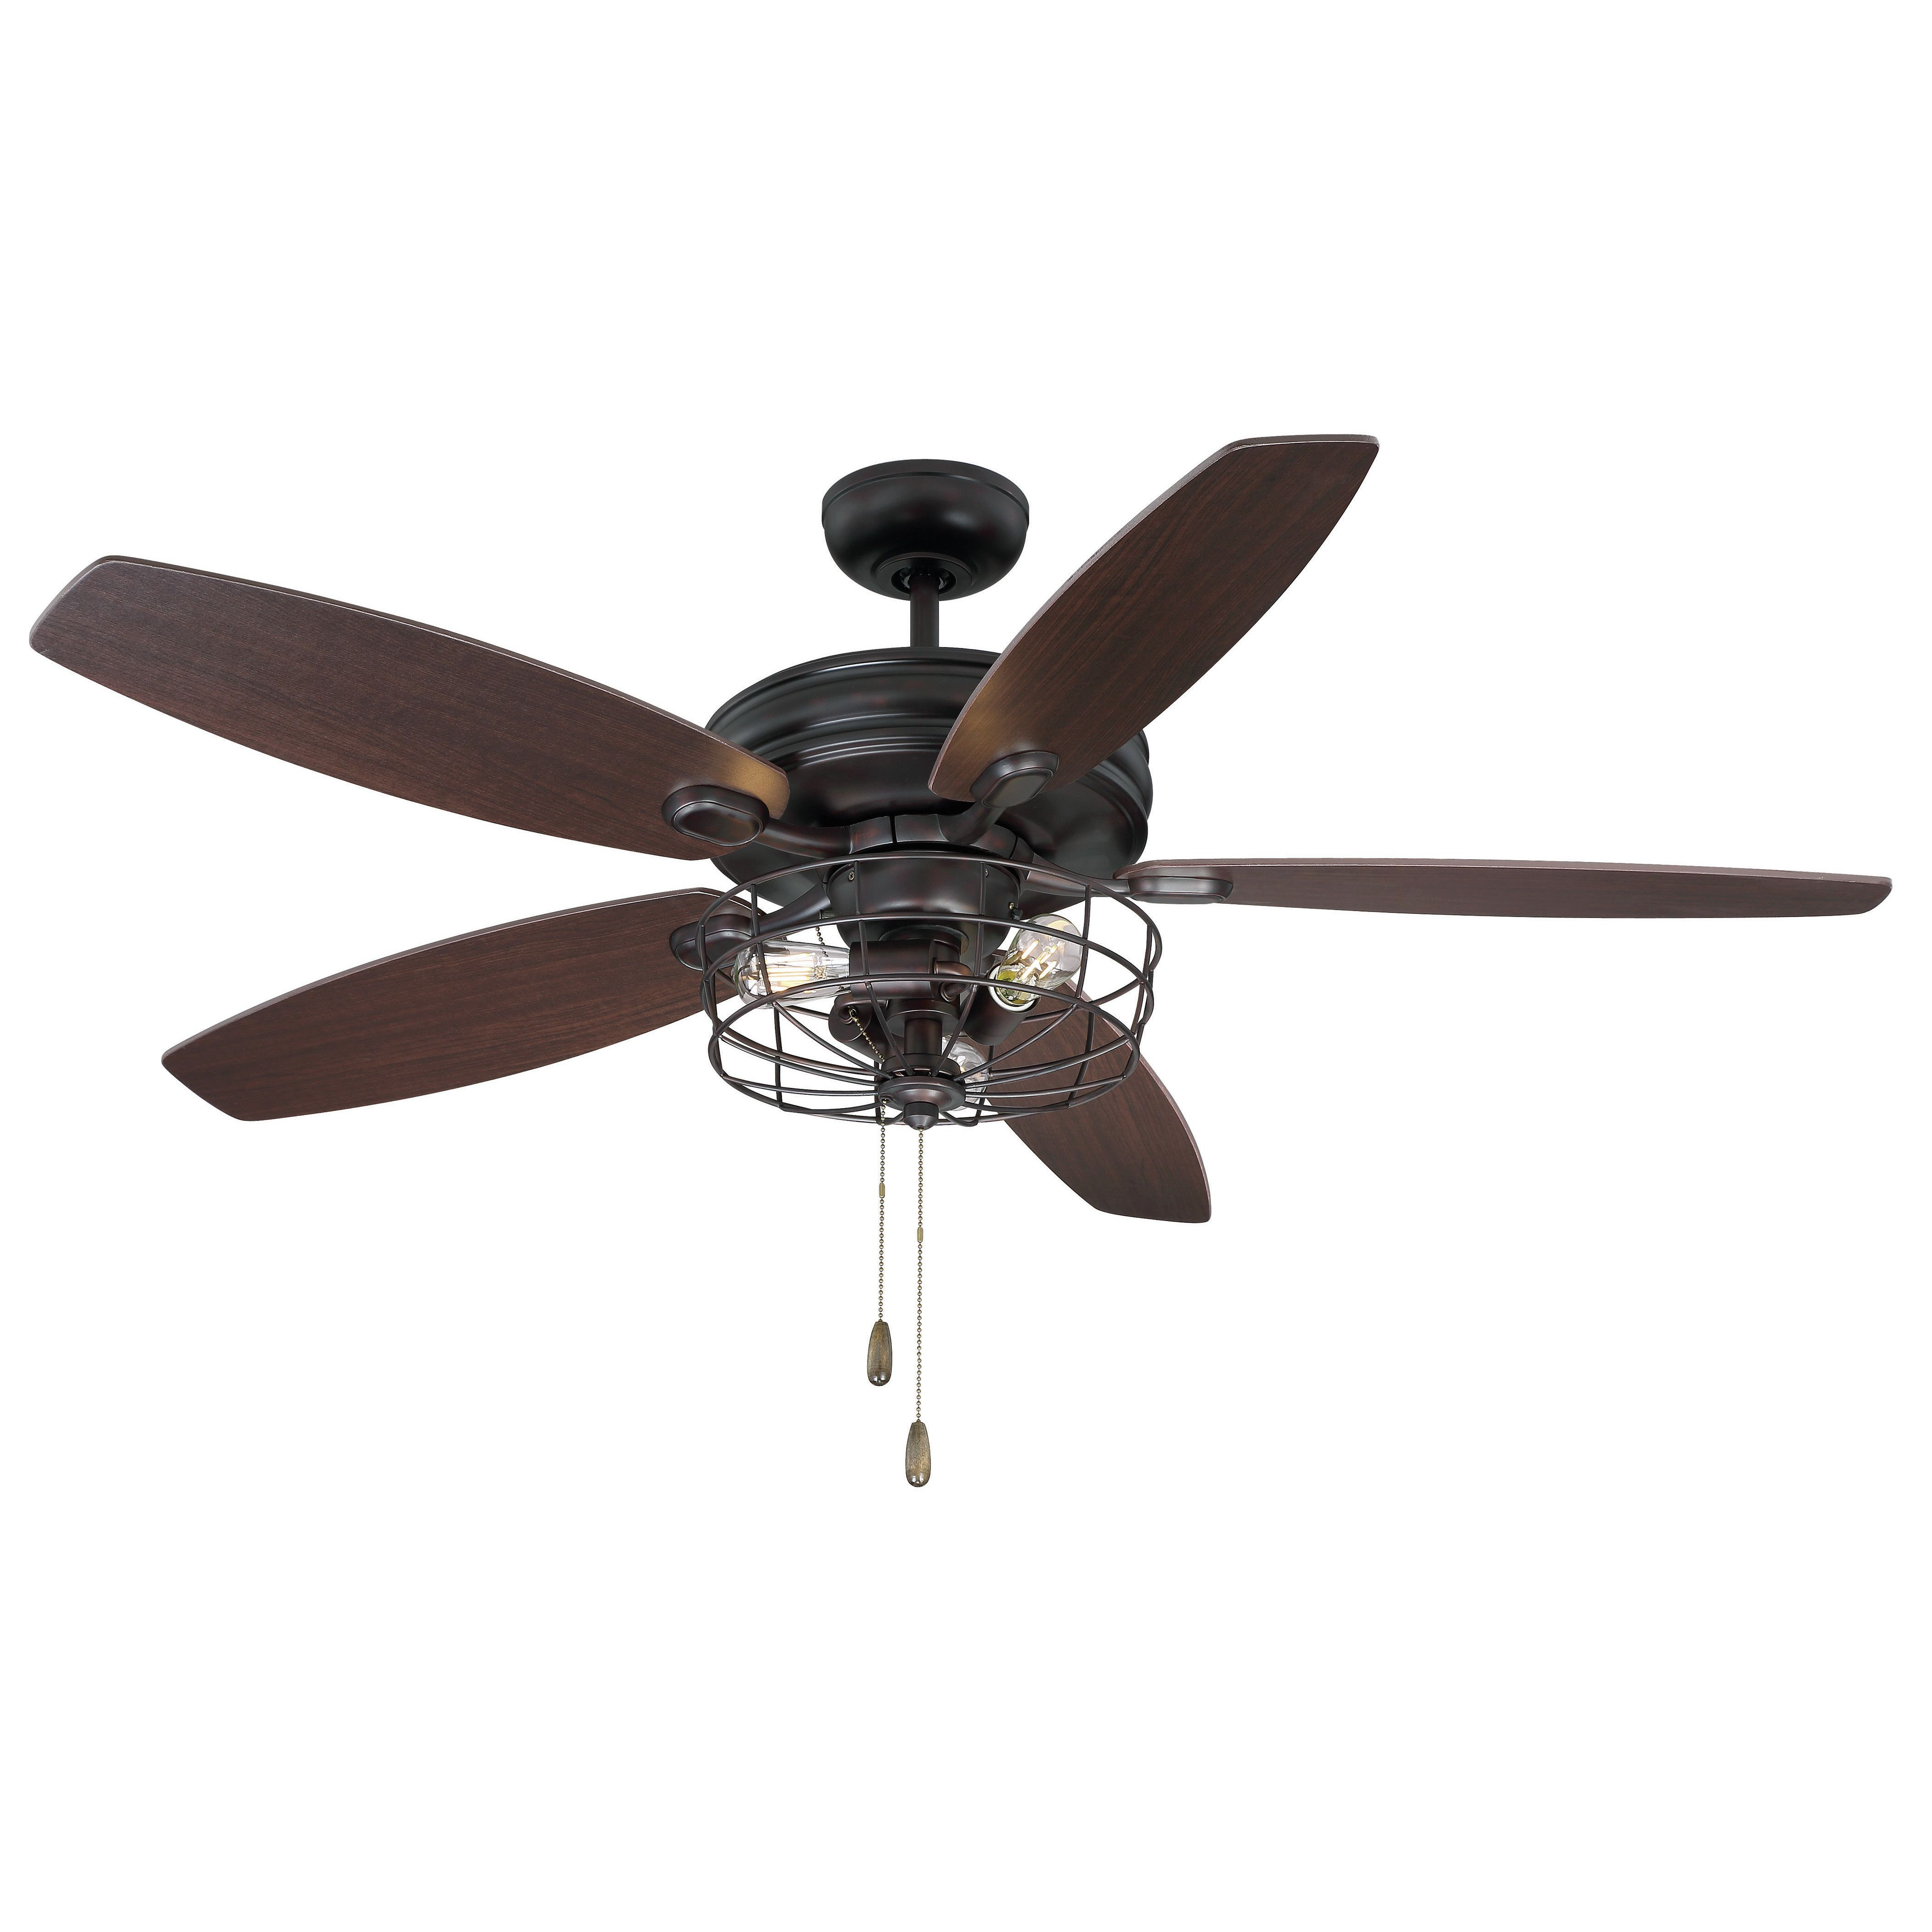 """52"""" Glenpool 5 Blade Ceiling Fan, Light Kit Included Pertaining To Widely Used Roberts 5 Blade Ceiling Fans (View 3 of 20)"""